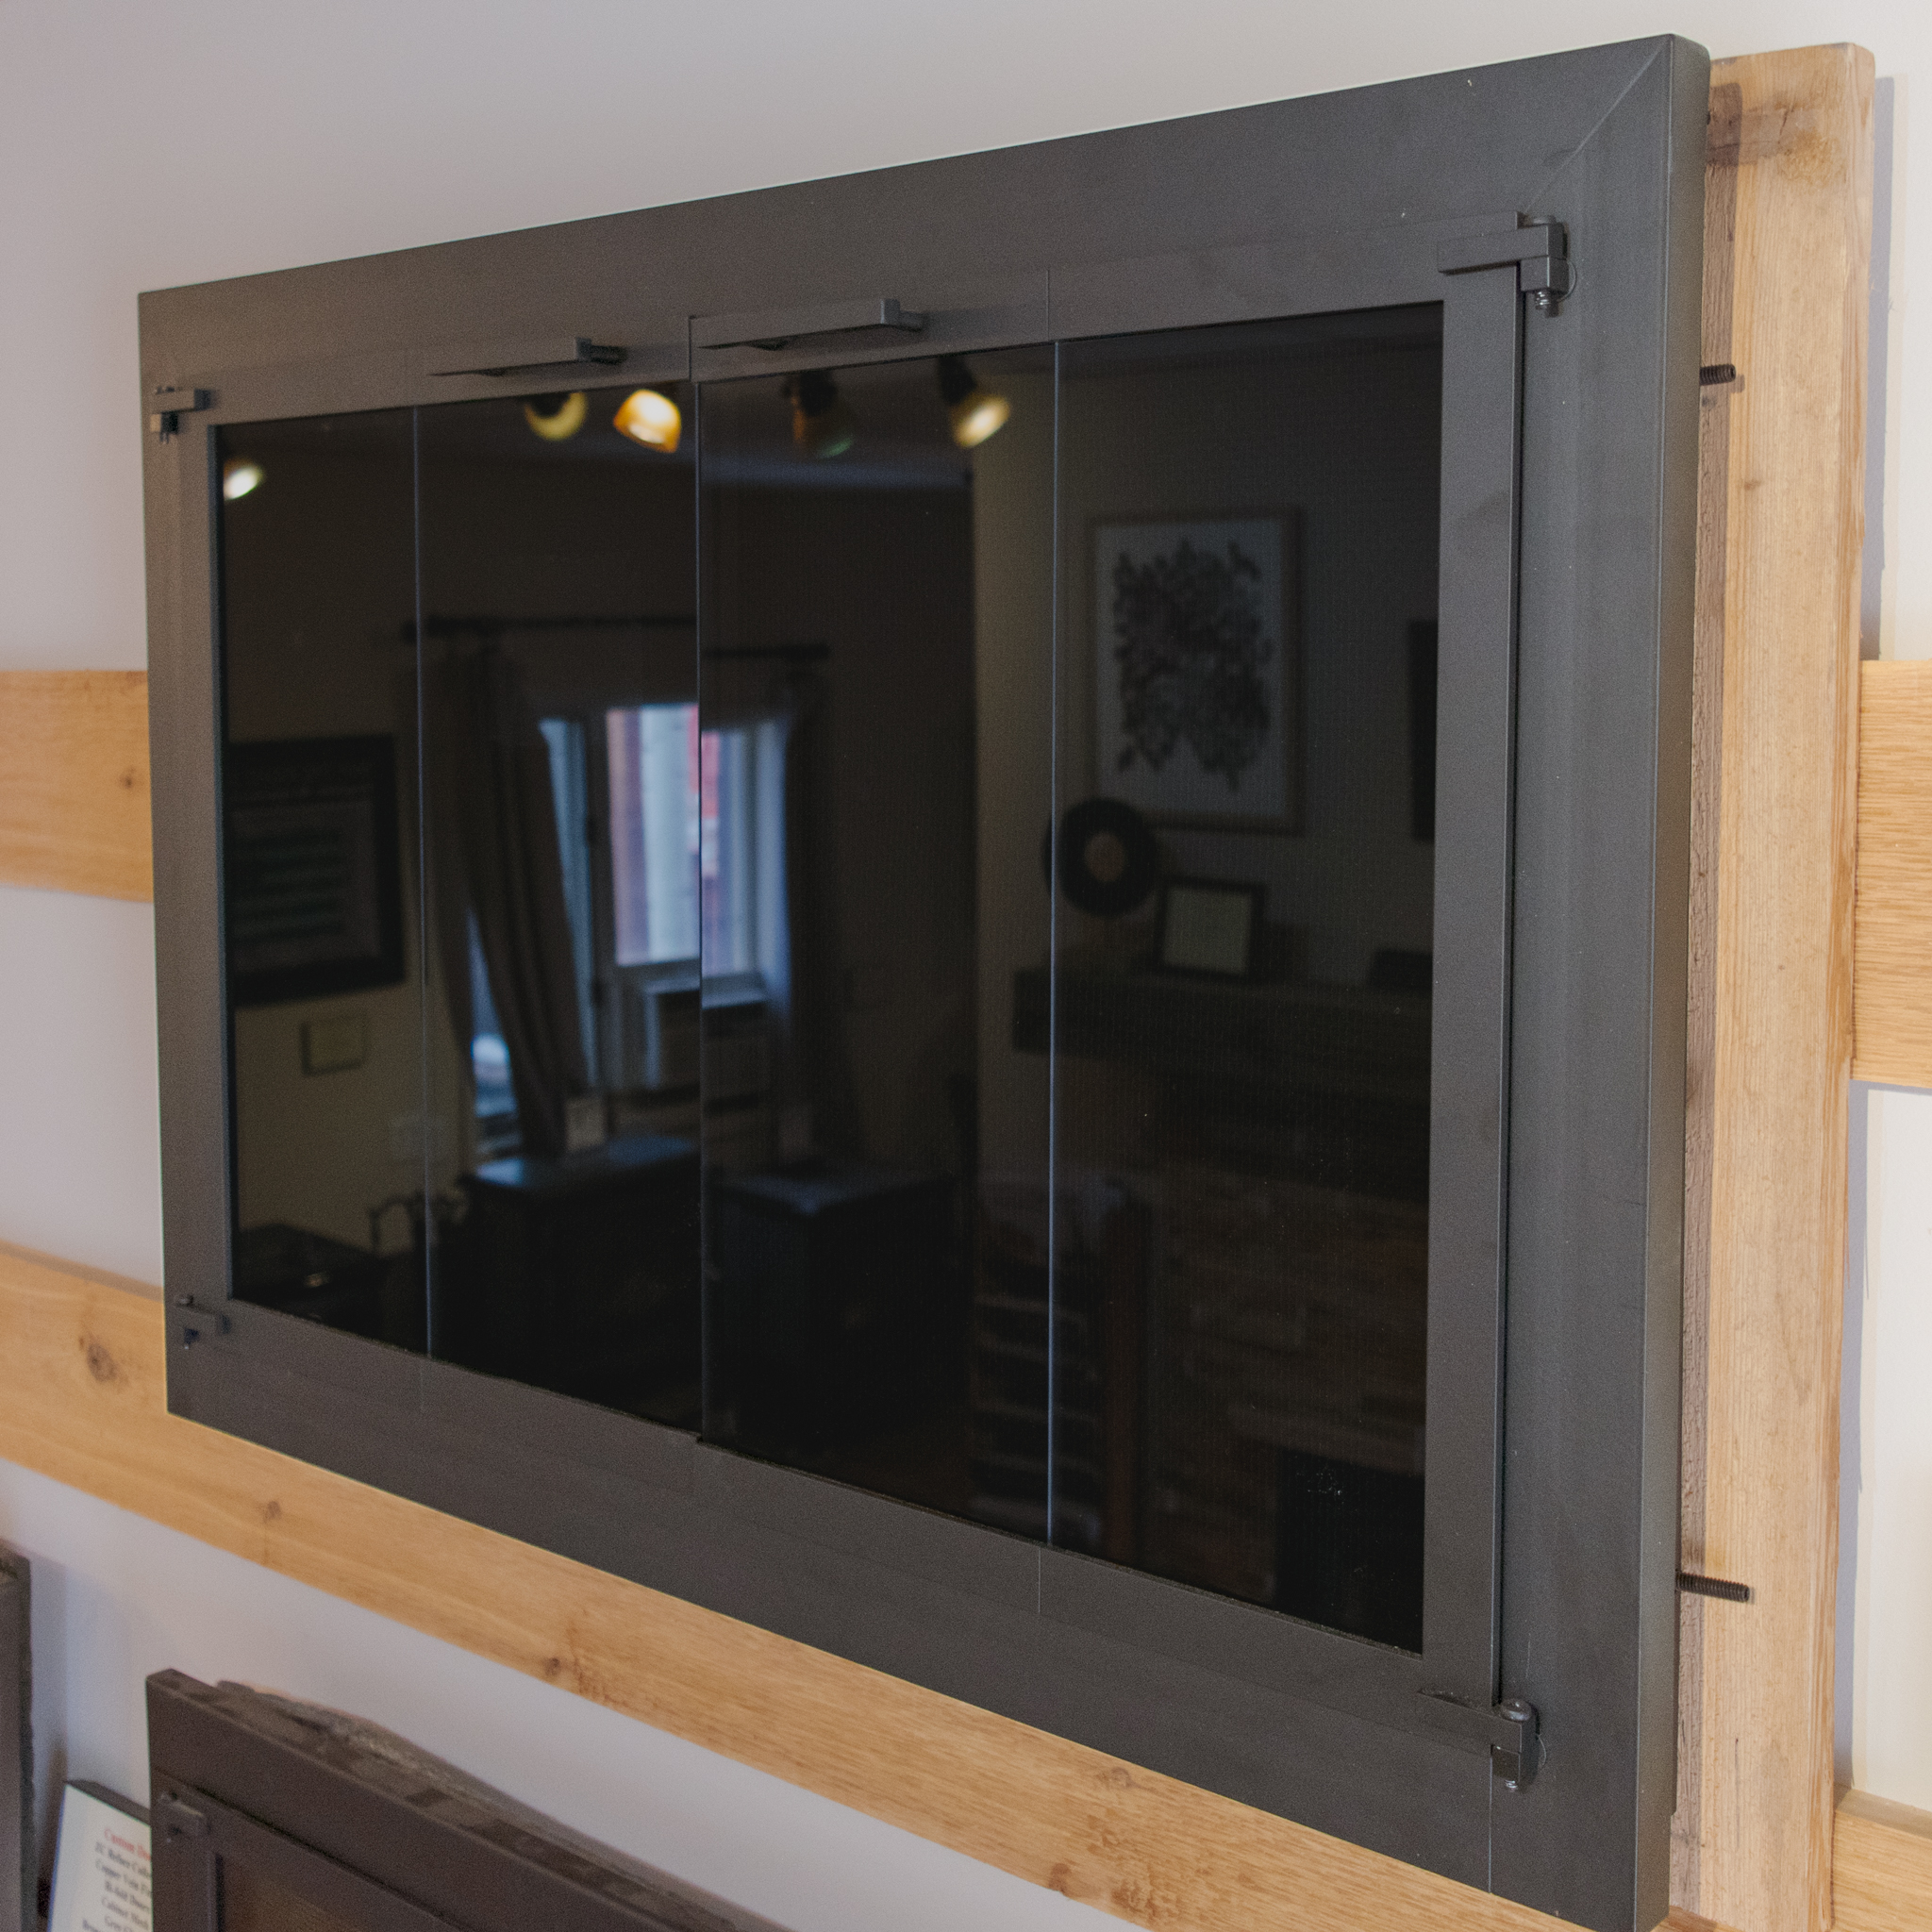 Stoll Kingston Series Doors - · Custom sized and fabricated· Matte black finish· Grey glass